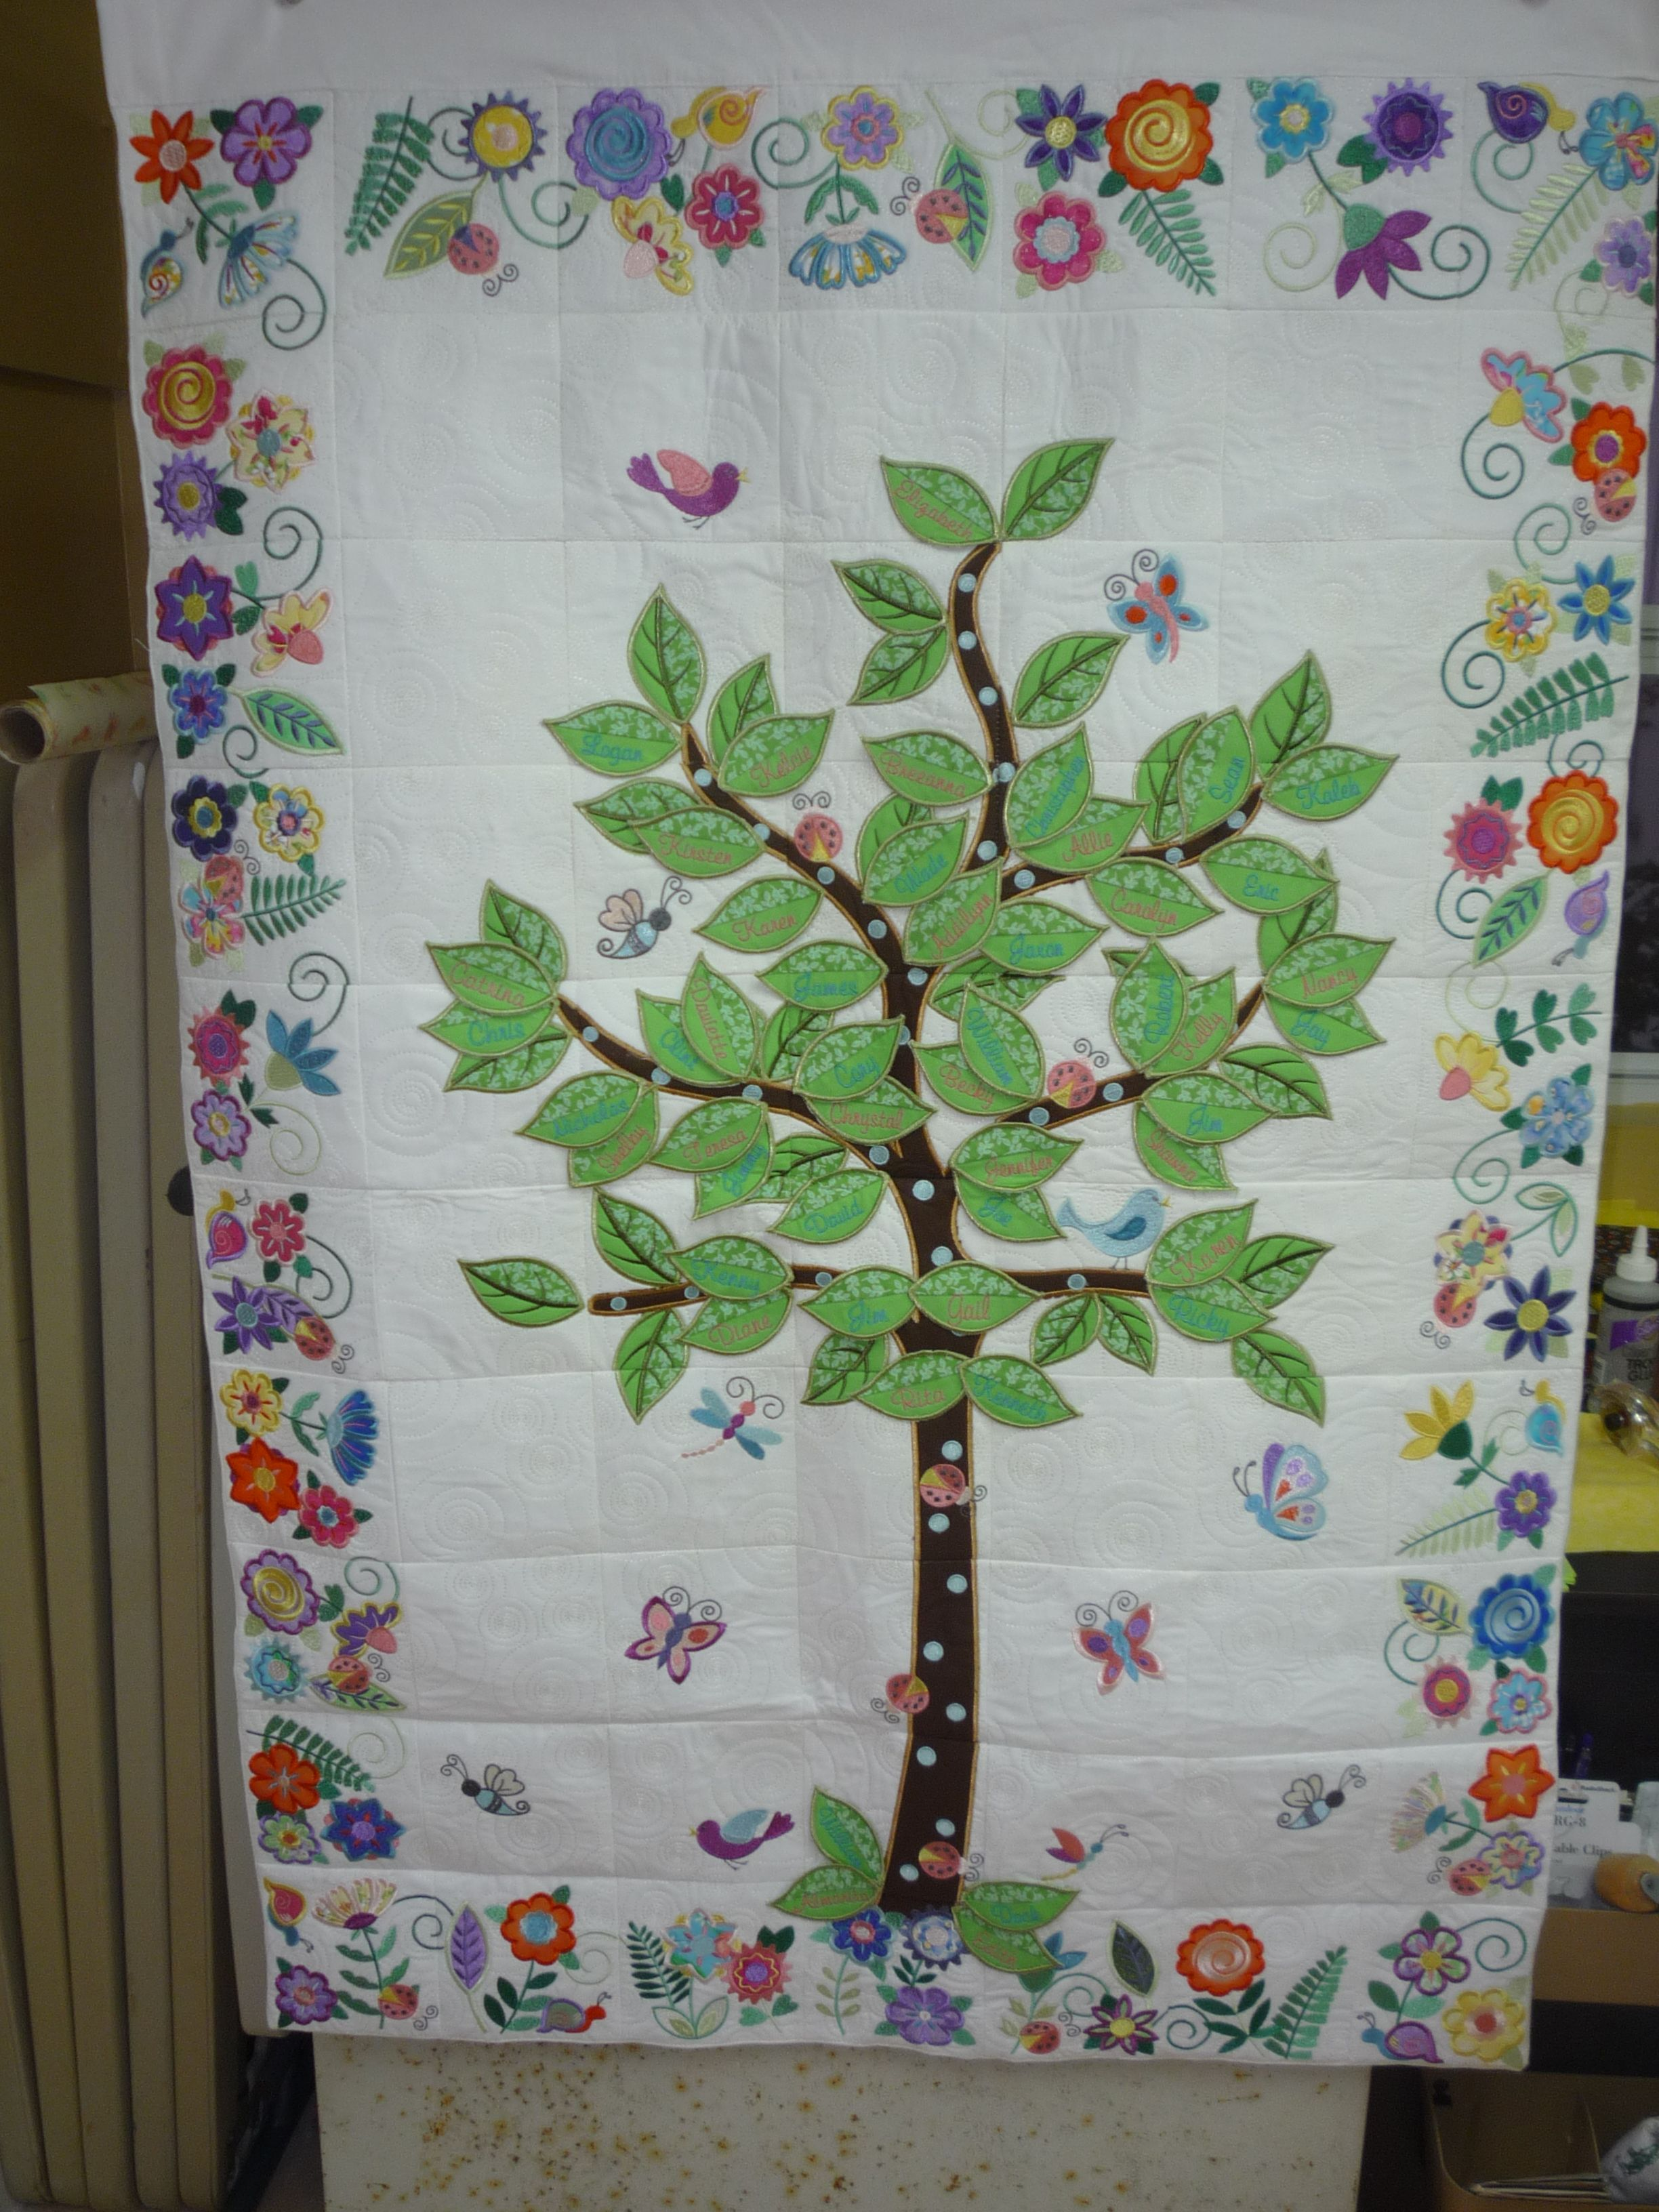 Life quilt includes names of family members on the tree leaves.